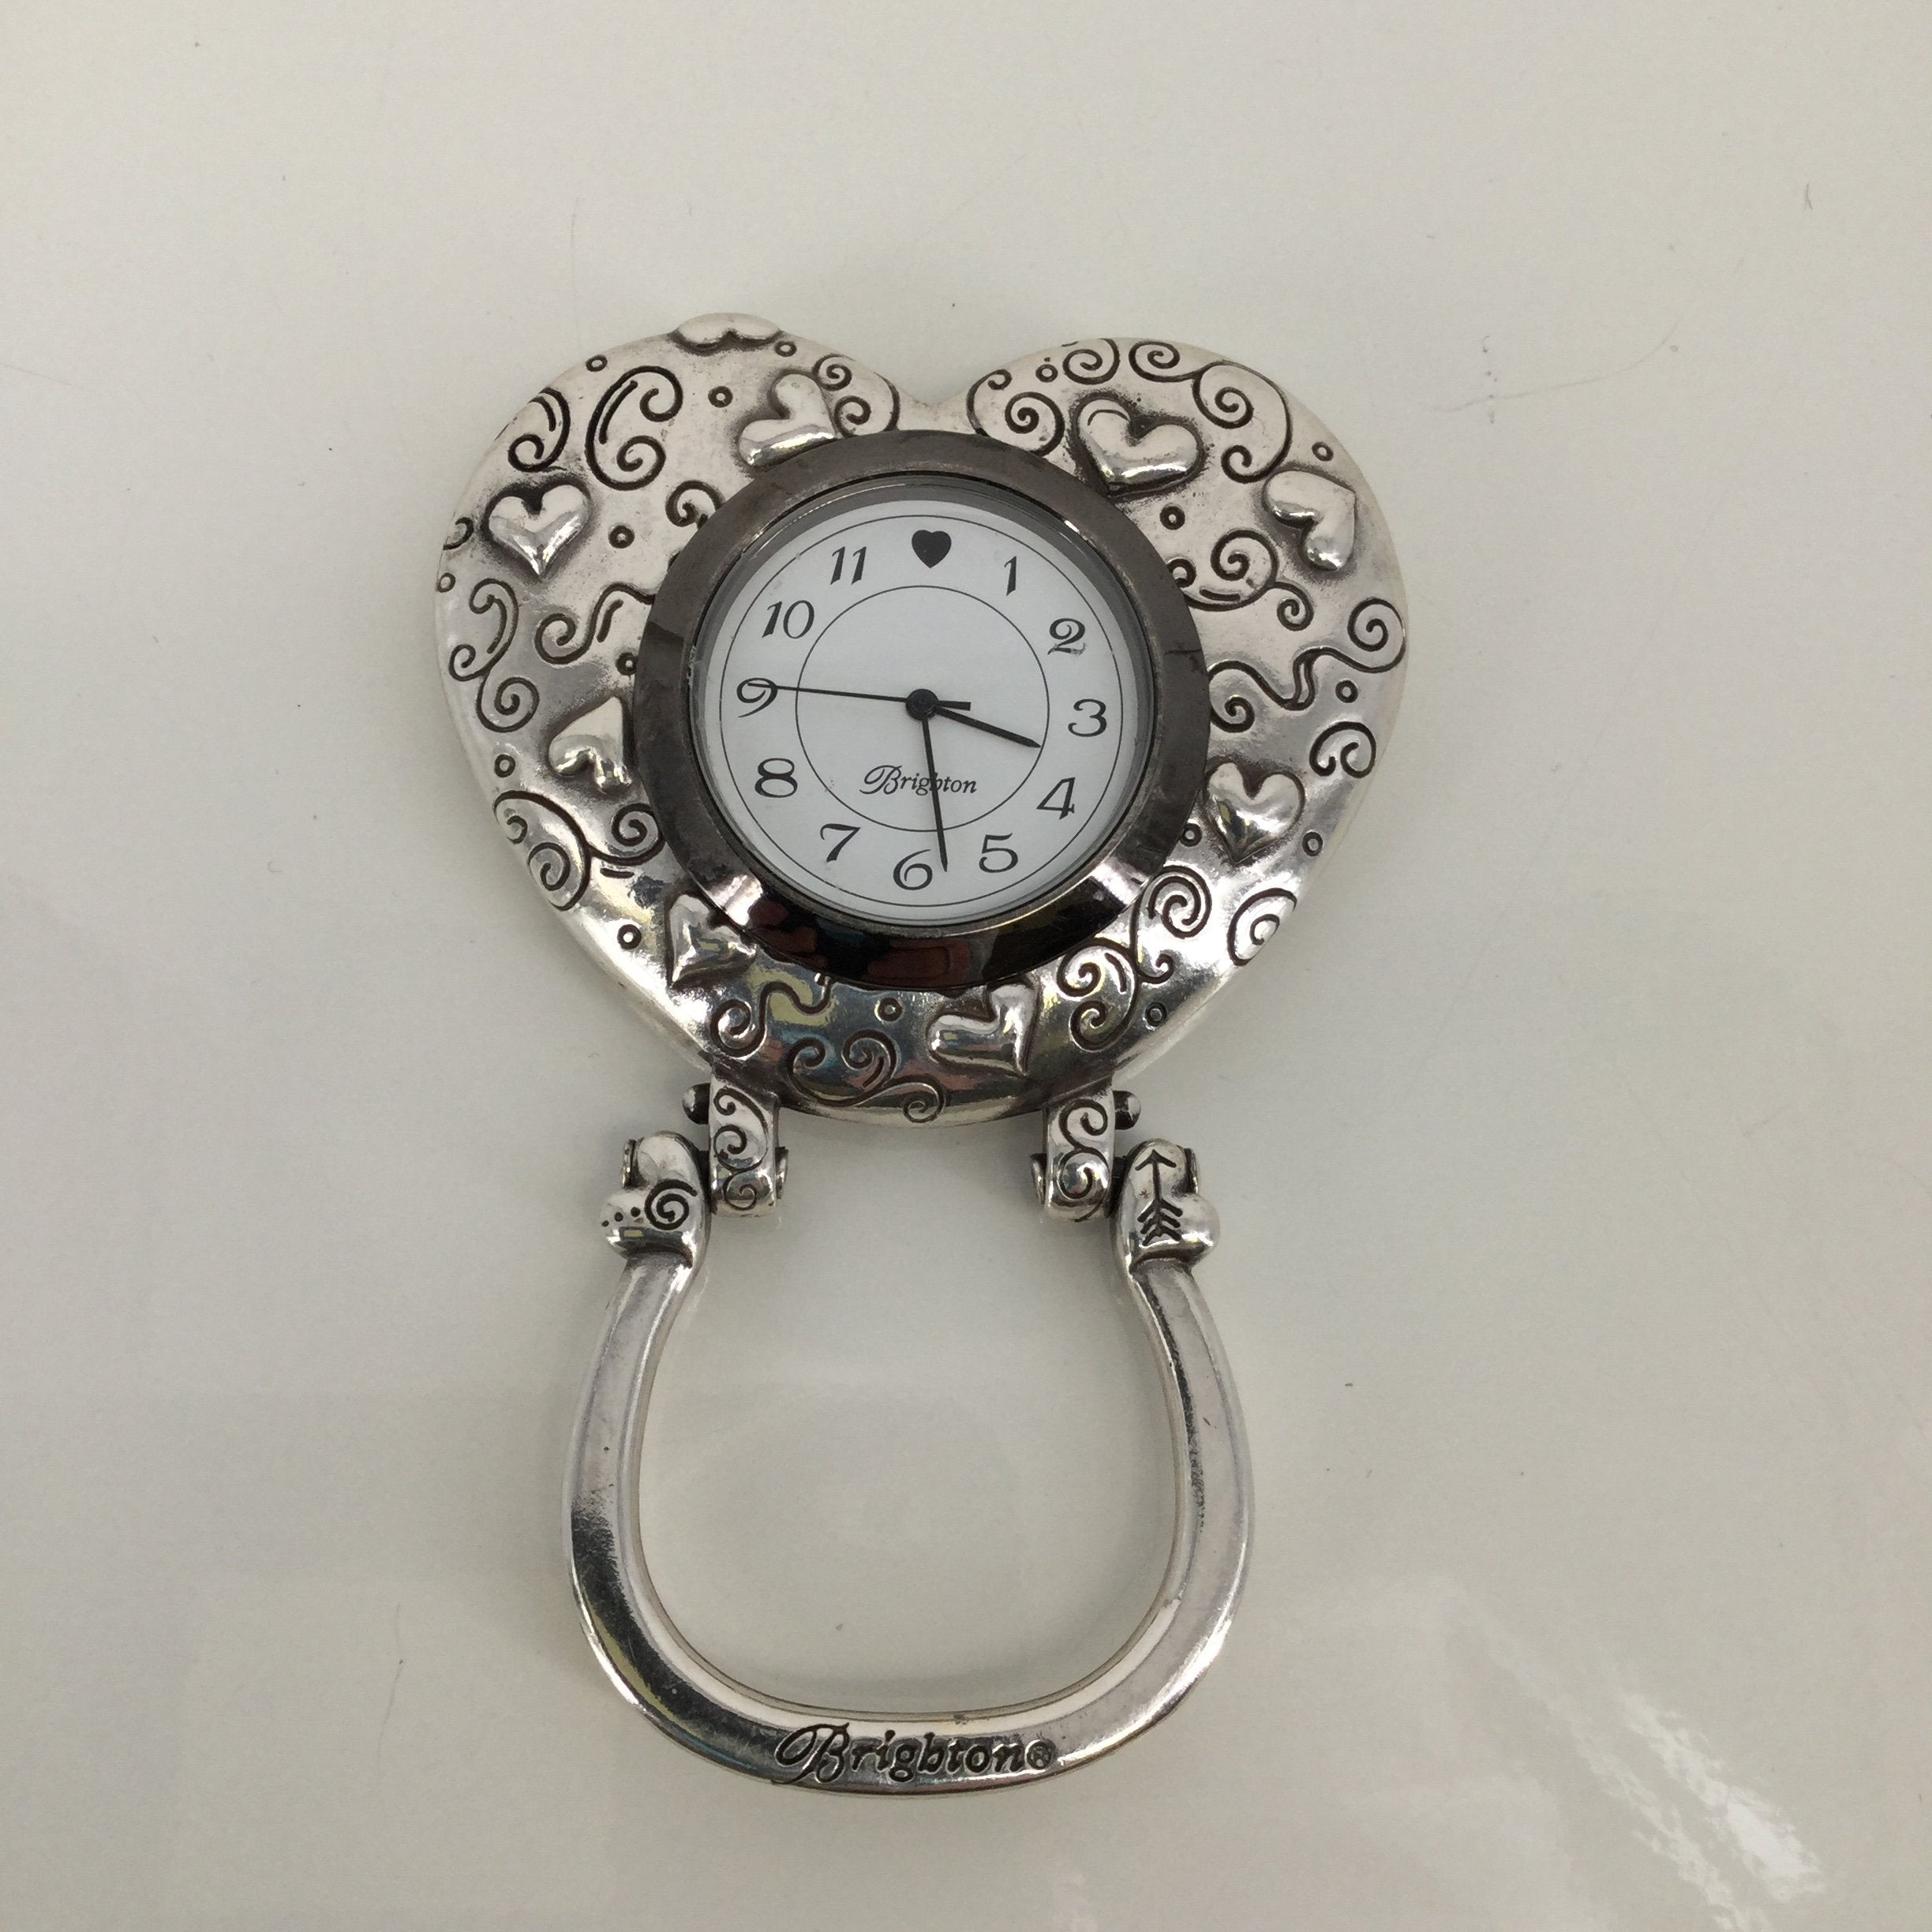 Brighton Silver Watch - <P>THIS WATCH FROM BRIGHTON IS HEART SHAPED. IT IS SILVER WITH A HEART PATTERN. IT HAS AN ADJUSTABLE STAND ATTACHED TO IT. THIS WATCH IS IN VERY GOOD CONDITION!</P>